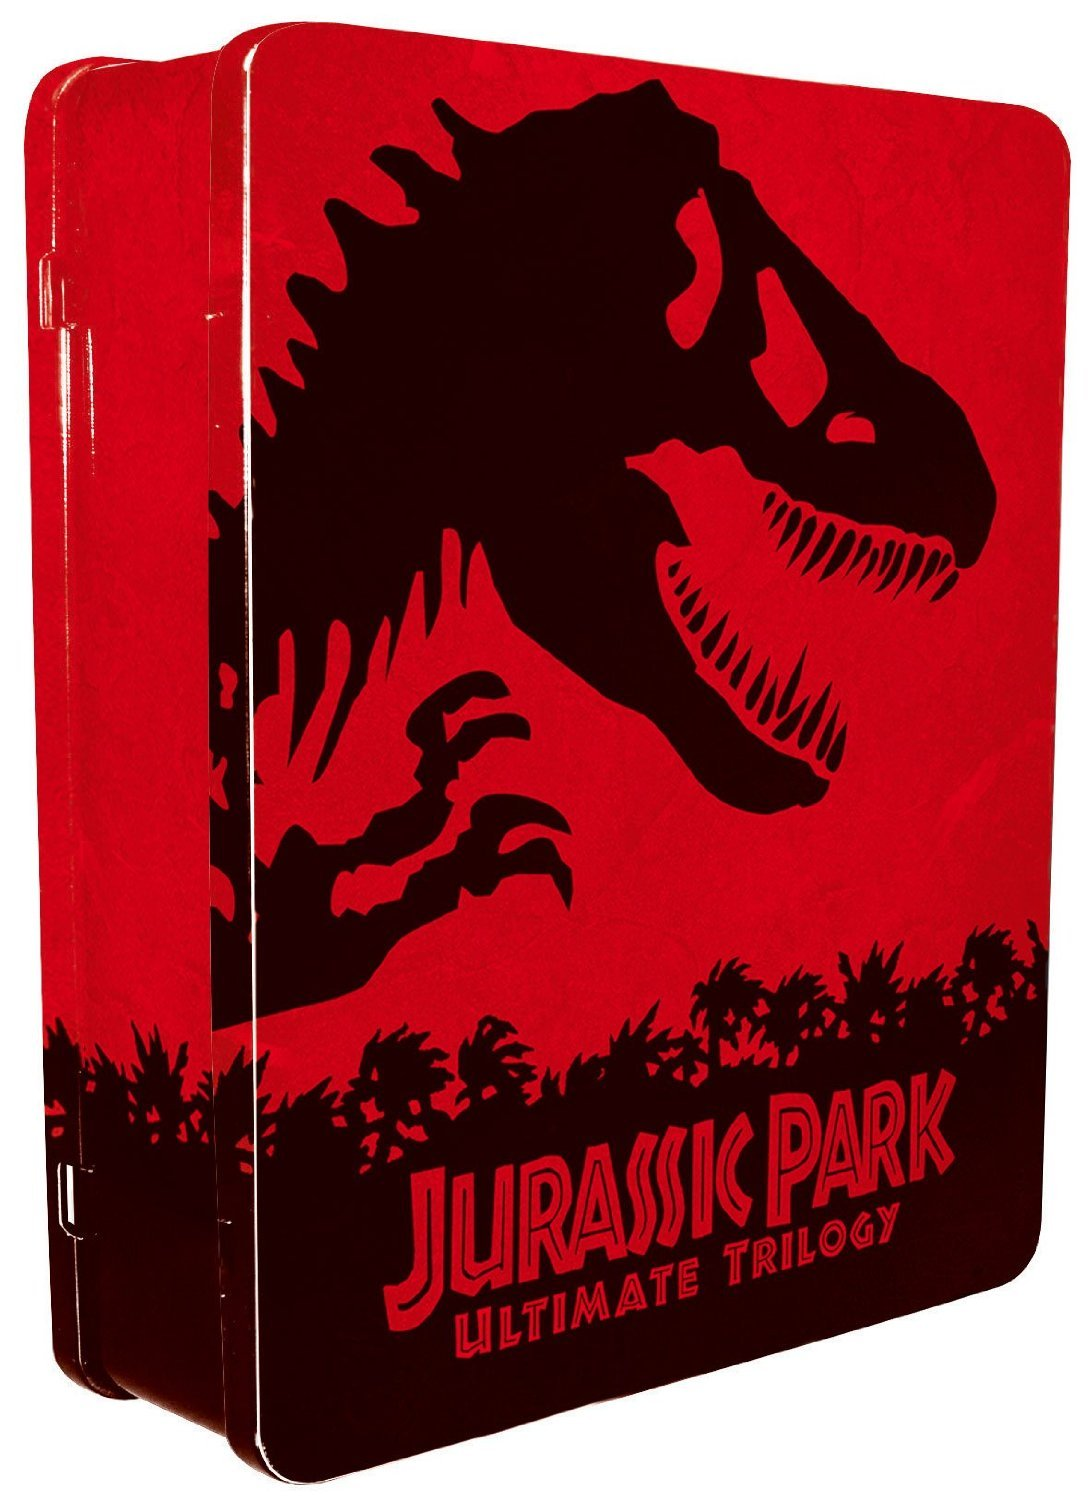 Jurassic Park Ultimate Trilogy - Limited Collector's Edition [Blu-ray]